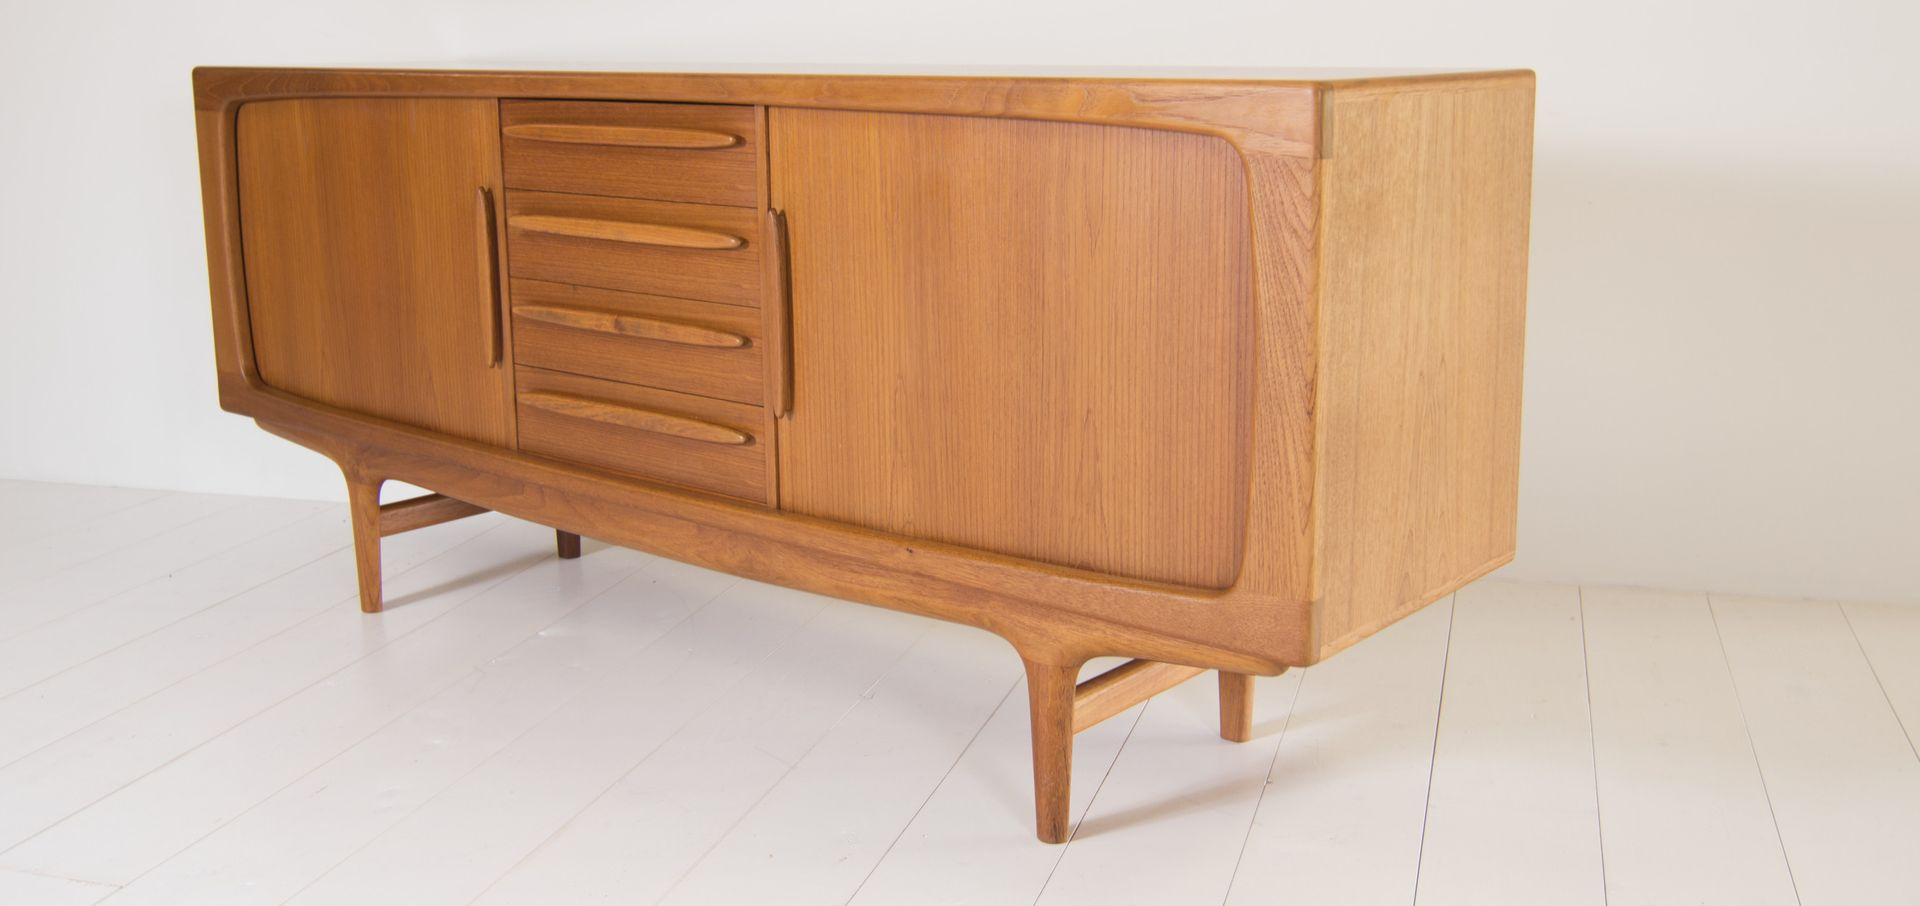 vintage sideboard mit 4 schubladen von bramin 1960er bei pamono kaufen. Black Bedroom Furniture Sets. Home Design Ideas